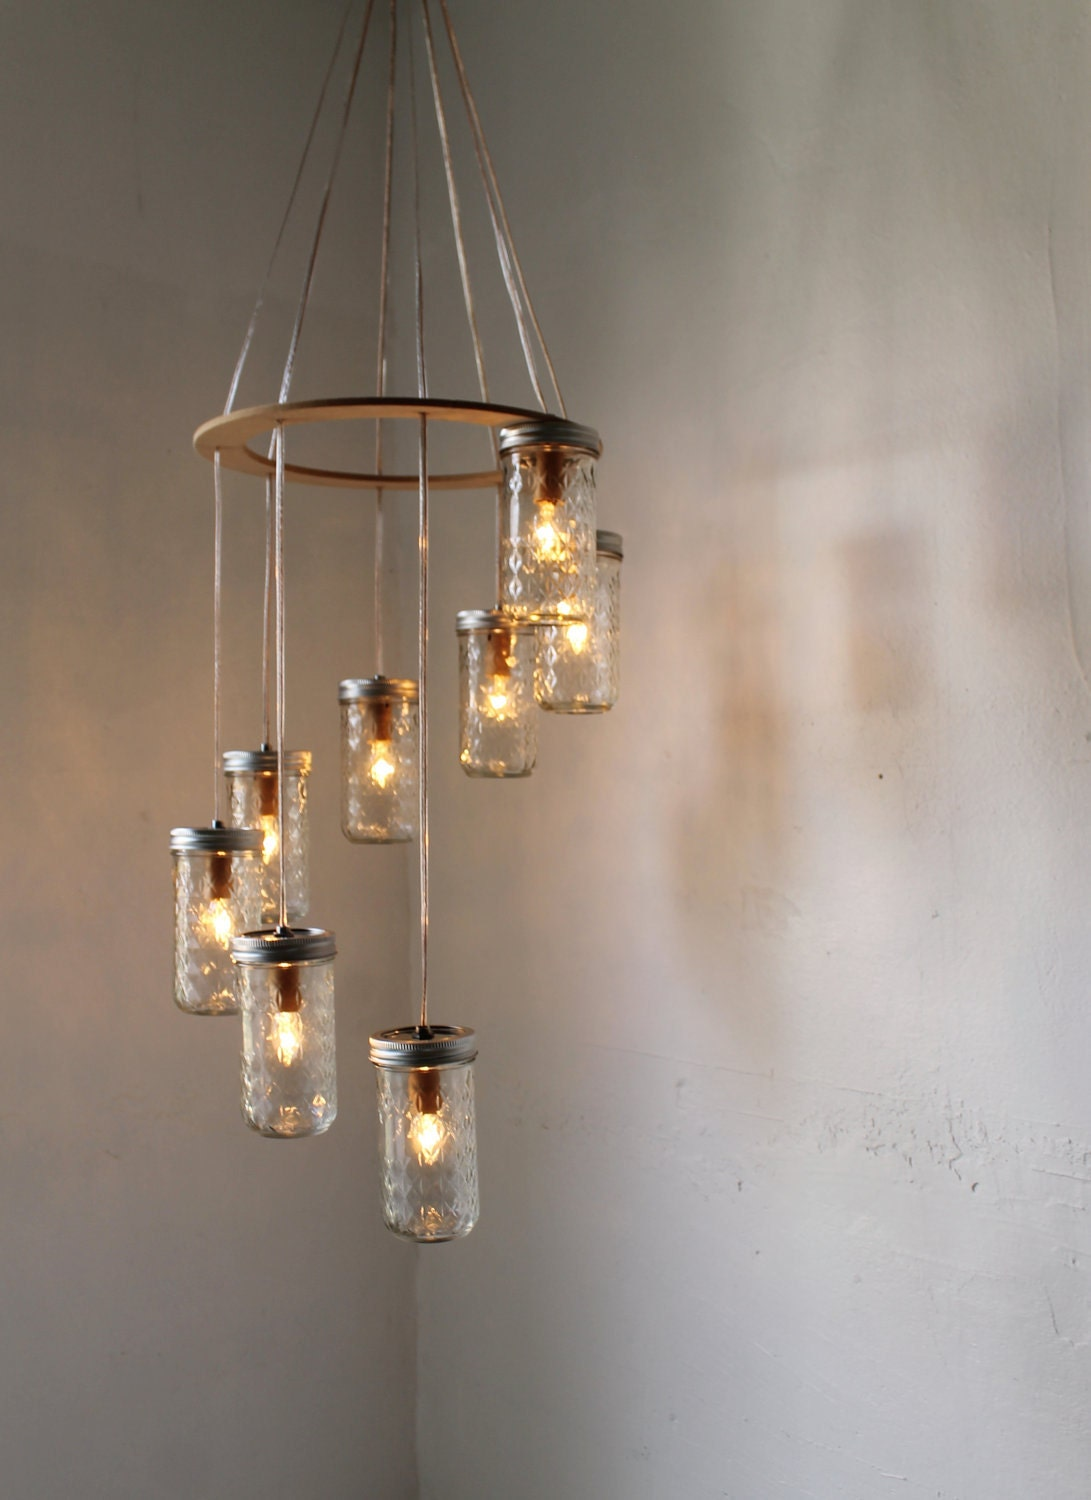 Erikas Chiquis Awesome Chandeliers – Awesome Chandeliers